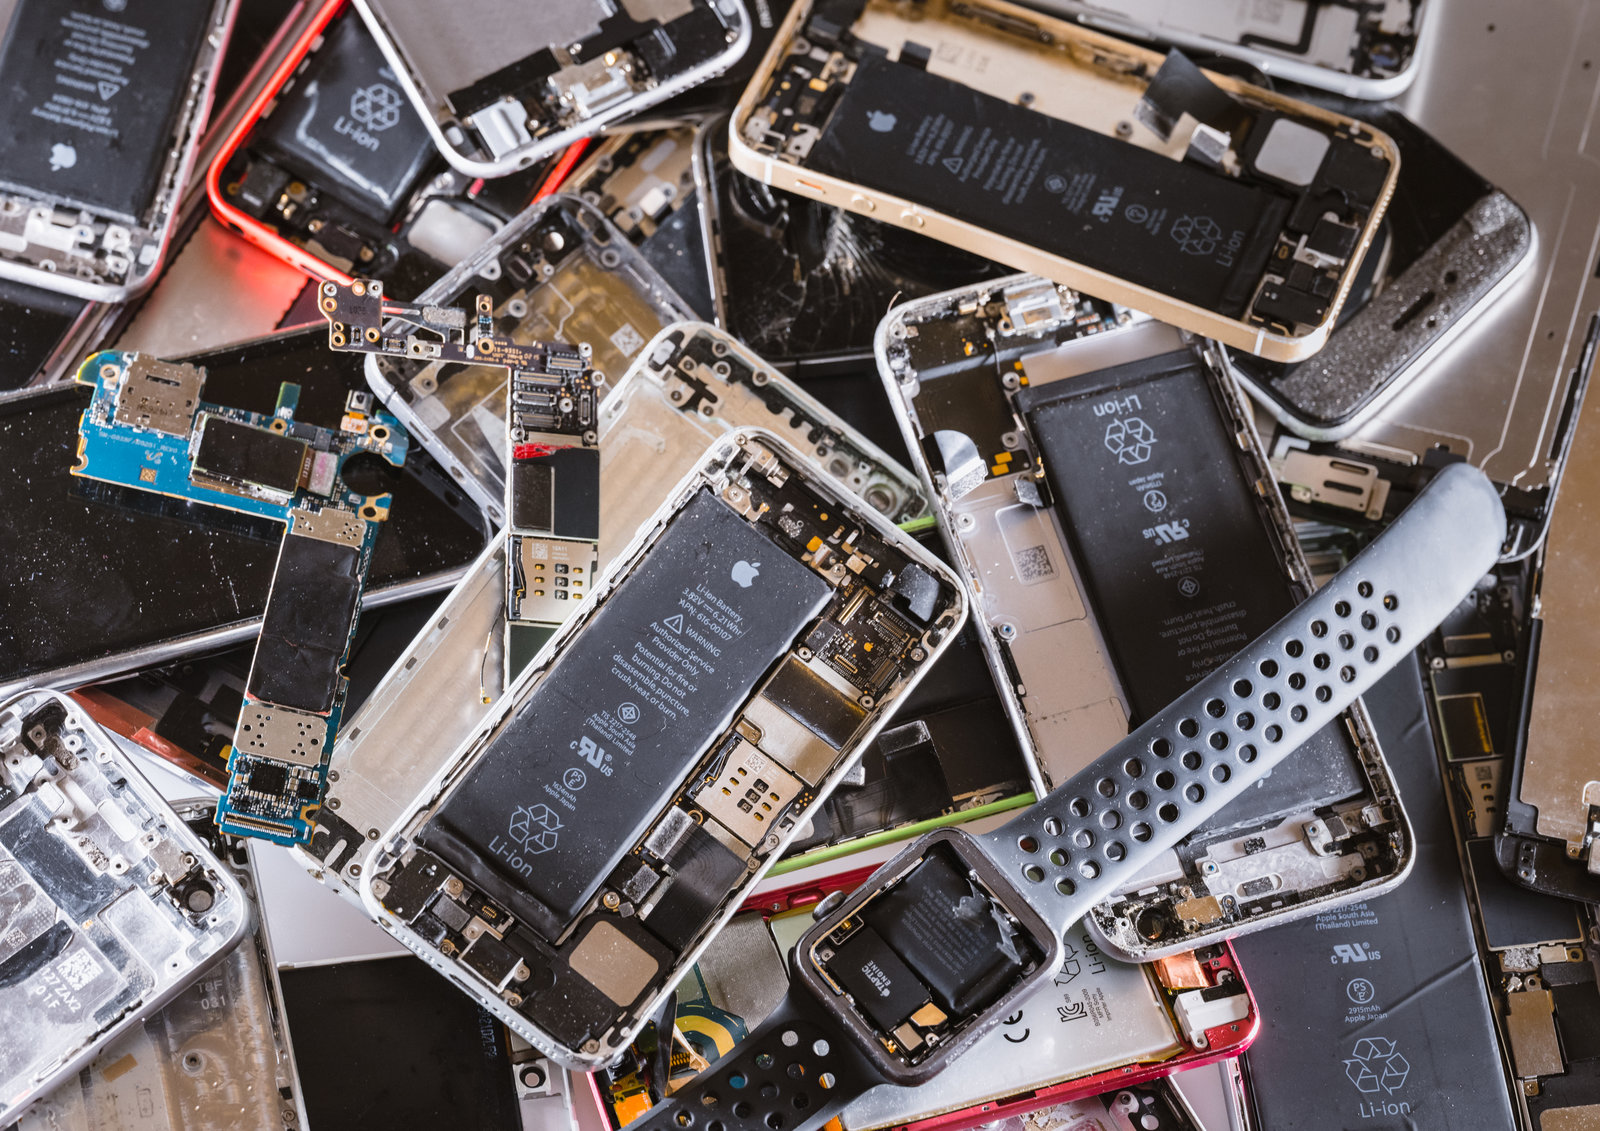 A pile of mobile phones and smart watches with their back covers removed